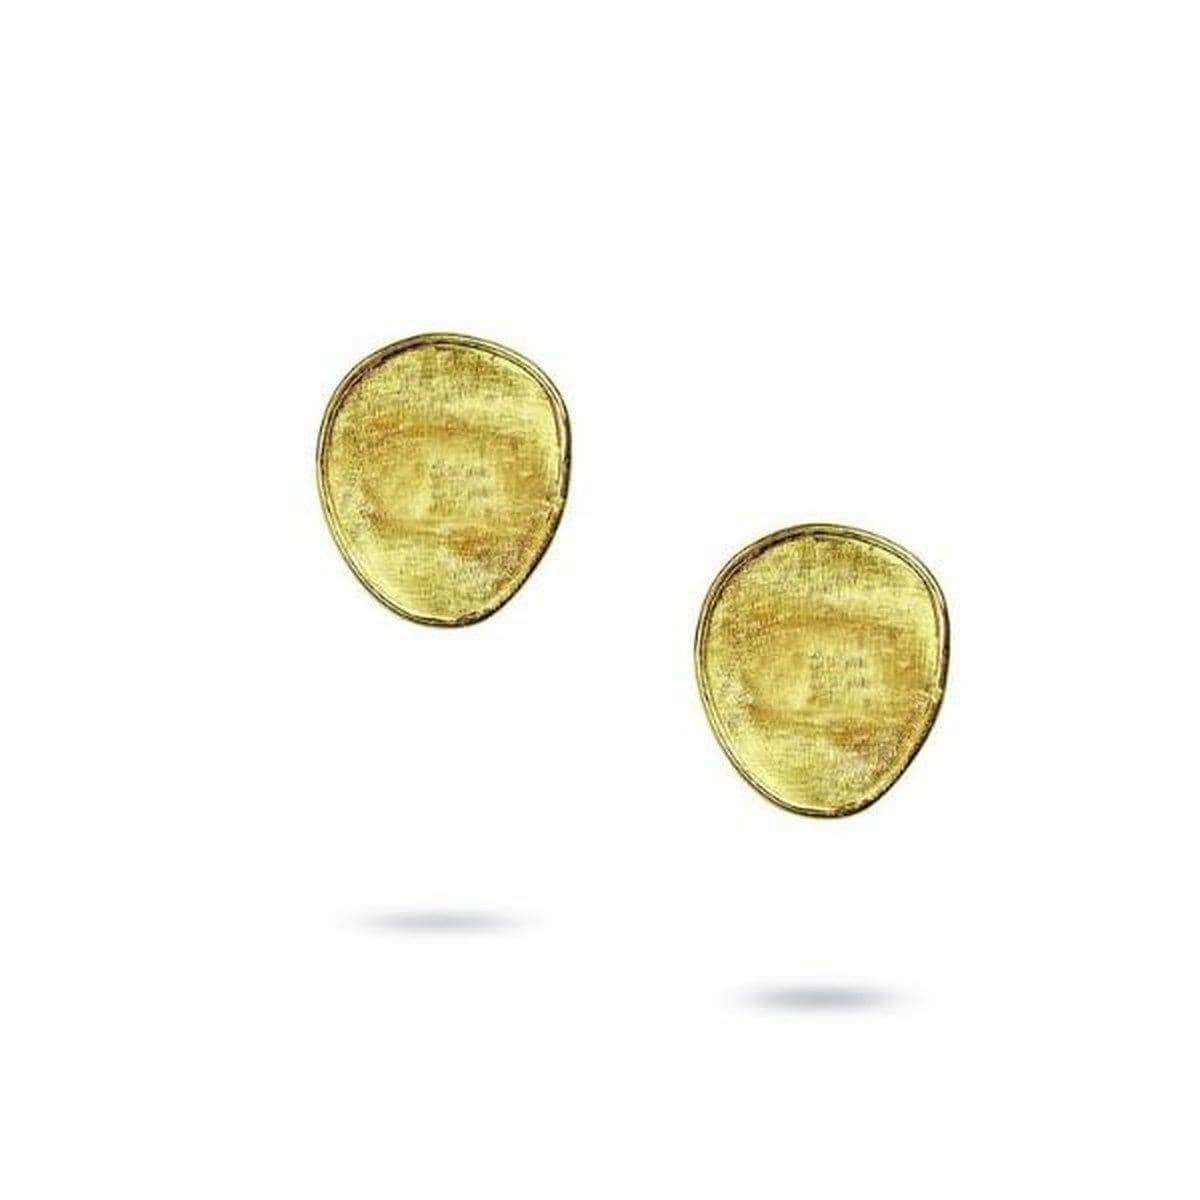 Lunaria 18K Yellow Gold Petite Stud Earrings - OB1341 Y-Marco Bicego-Renee Taylor Gallery